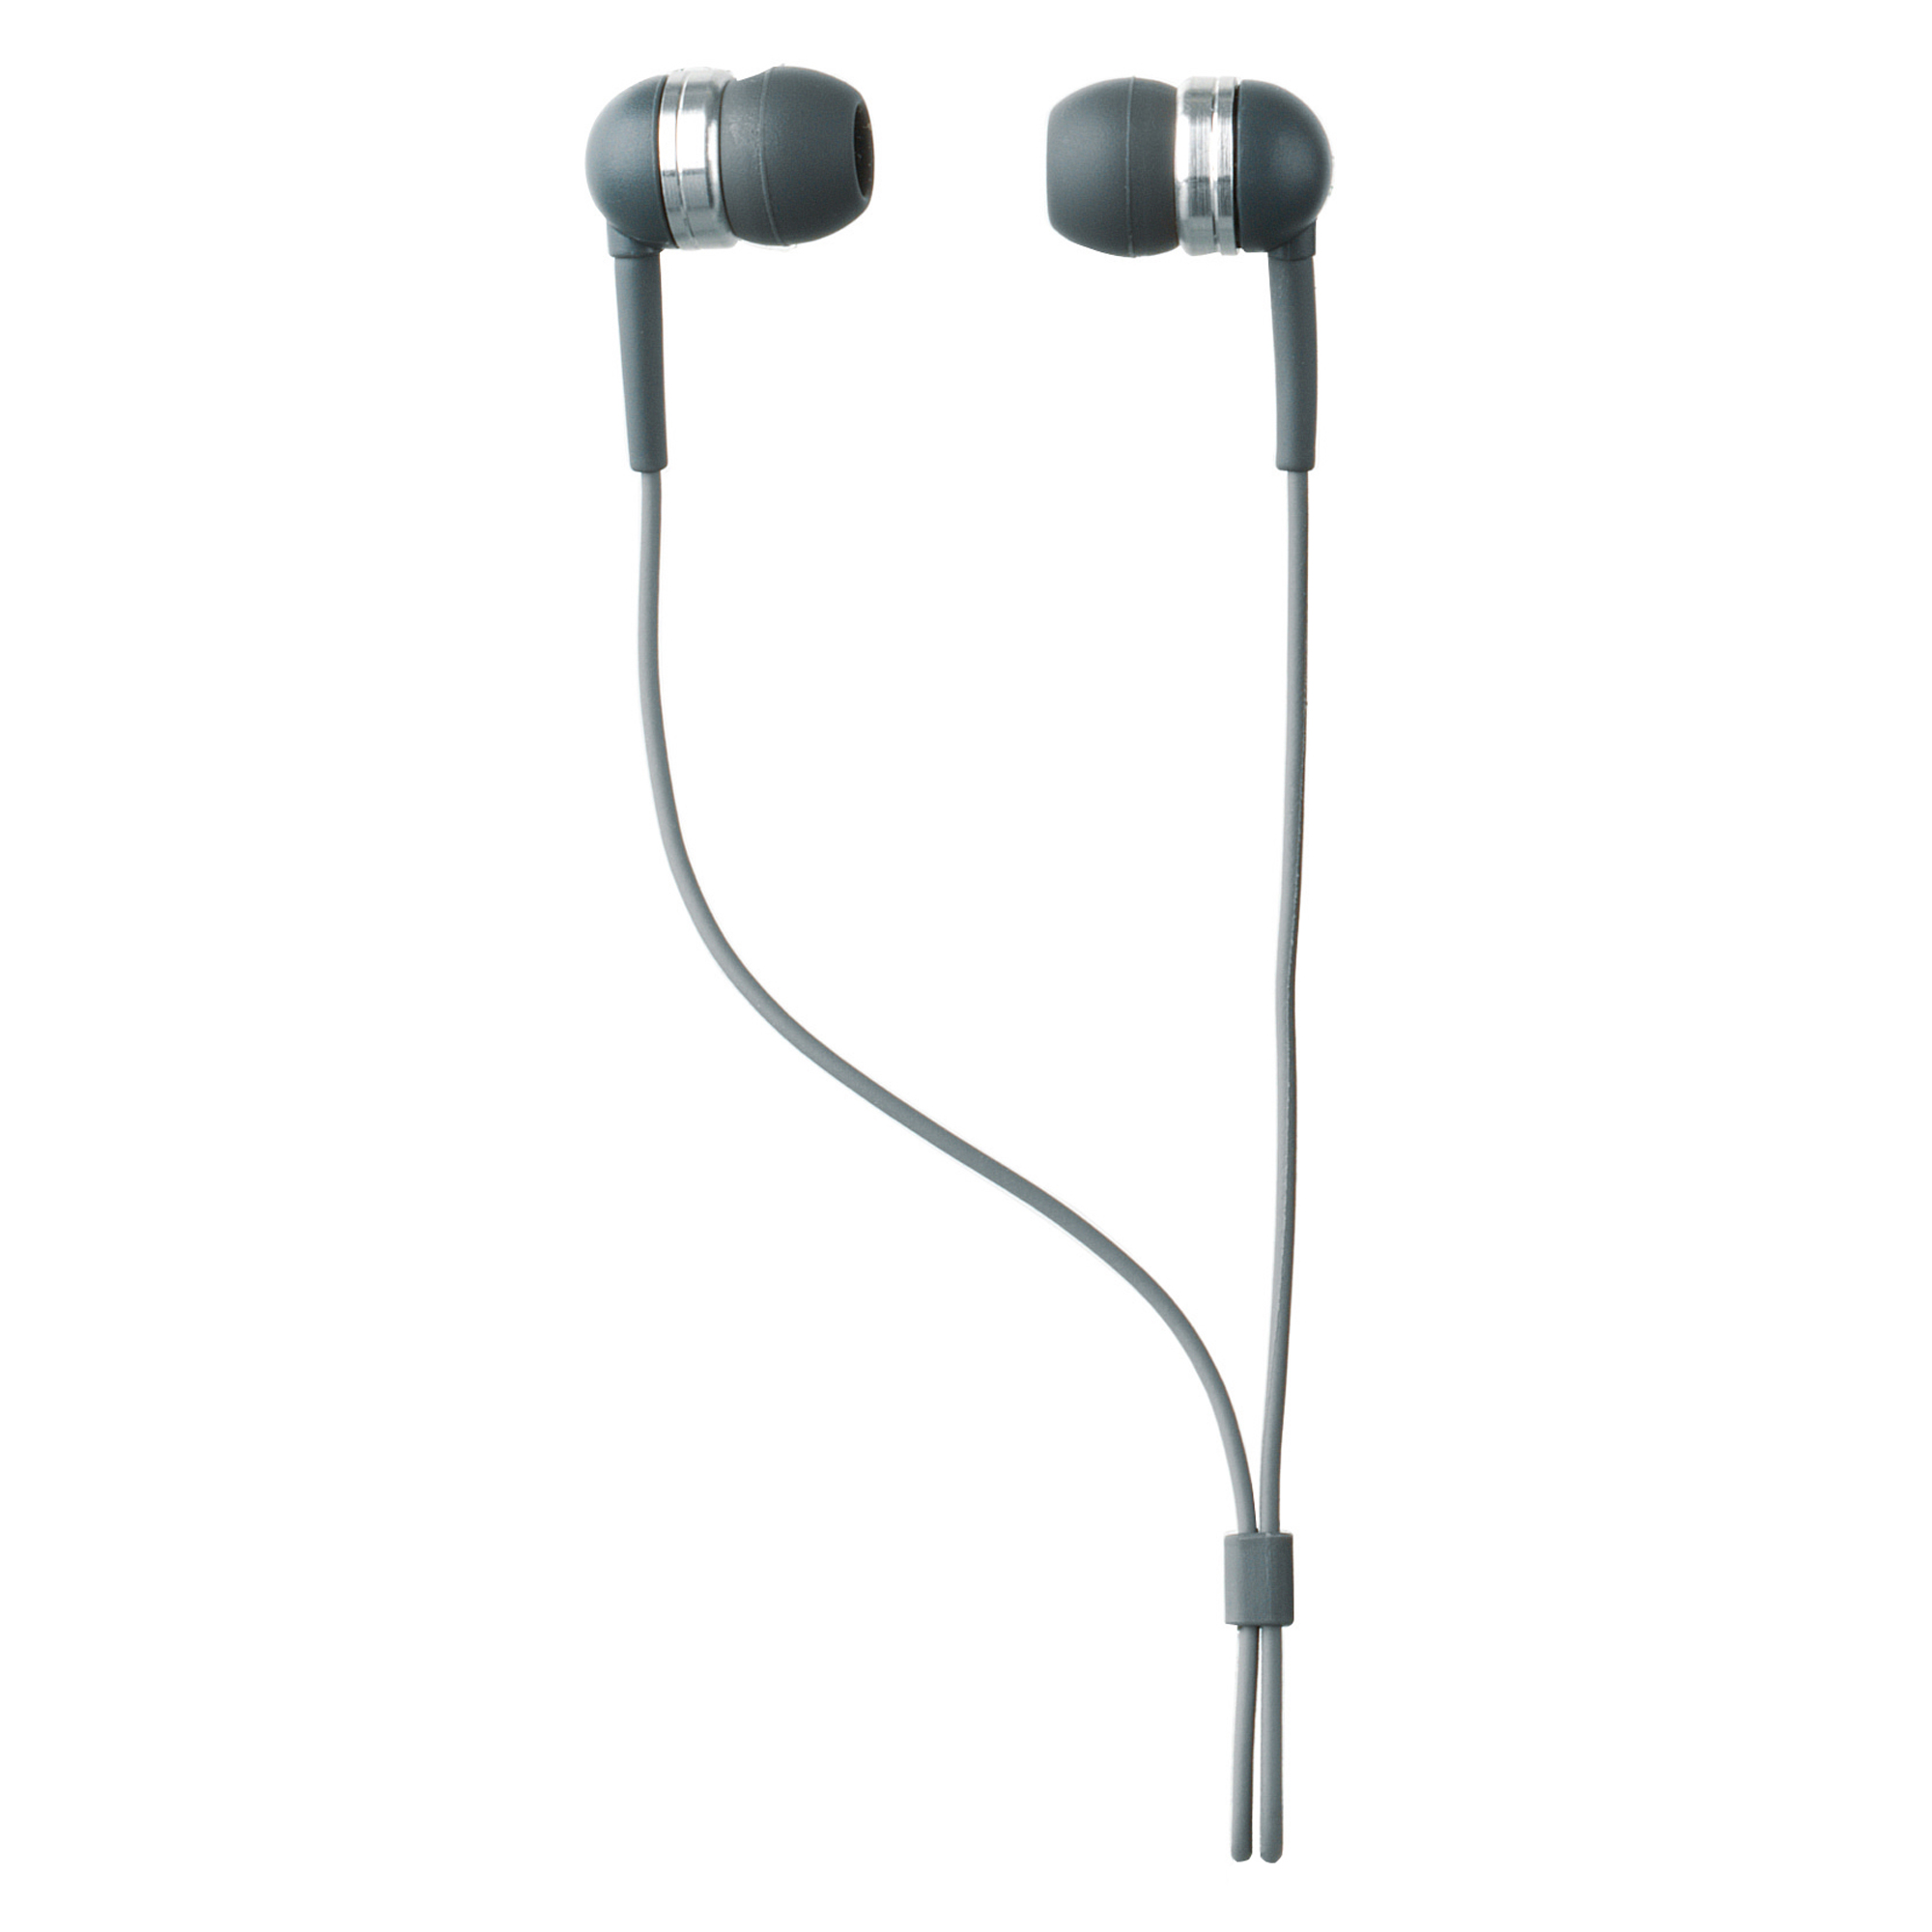 High performance in-ear headphones